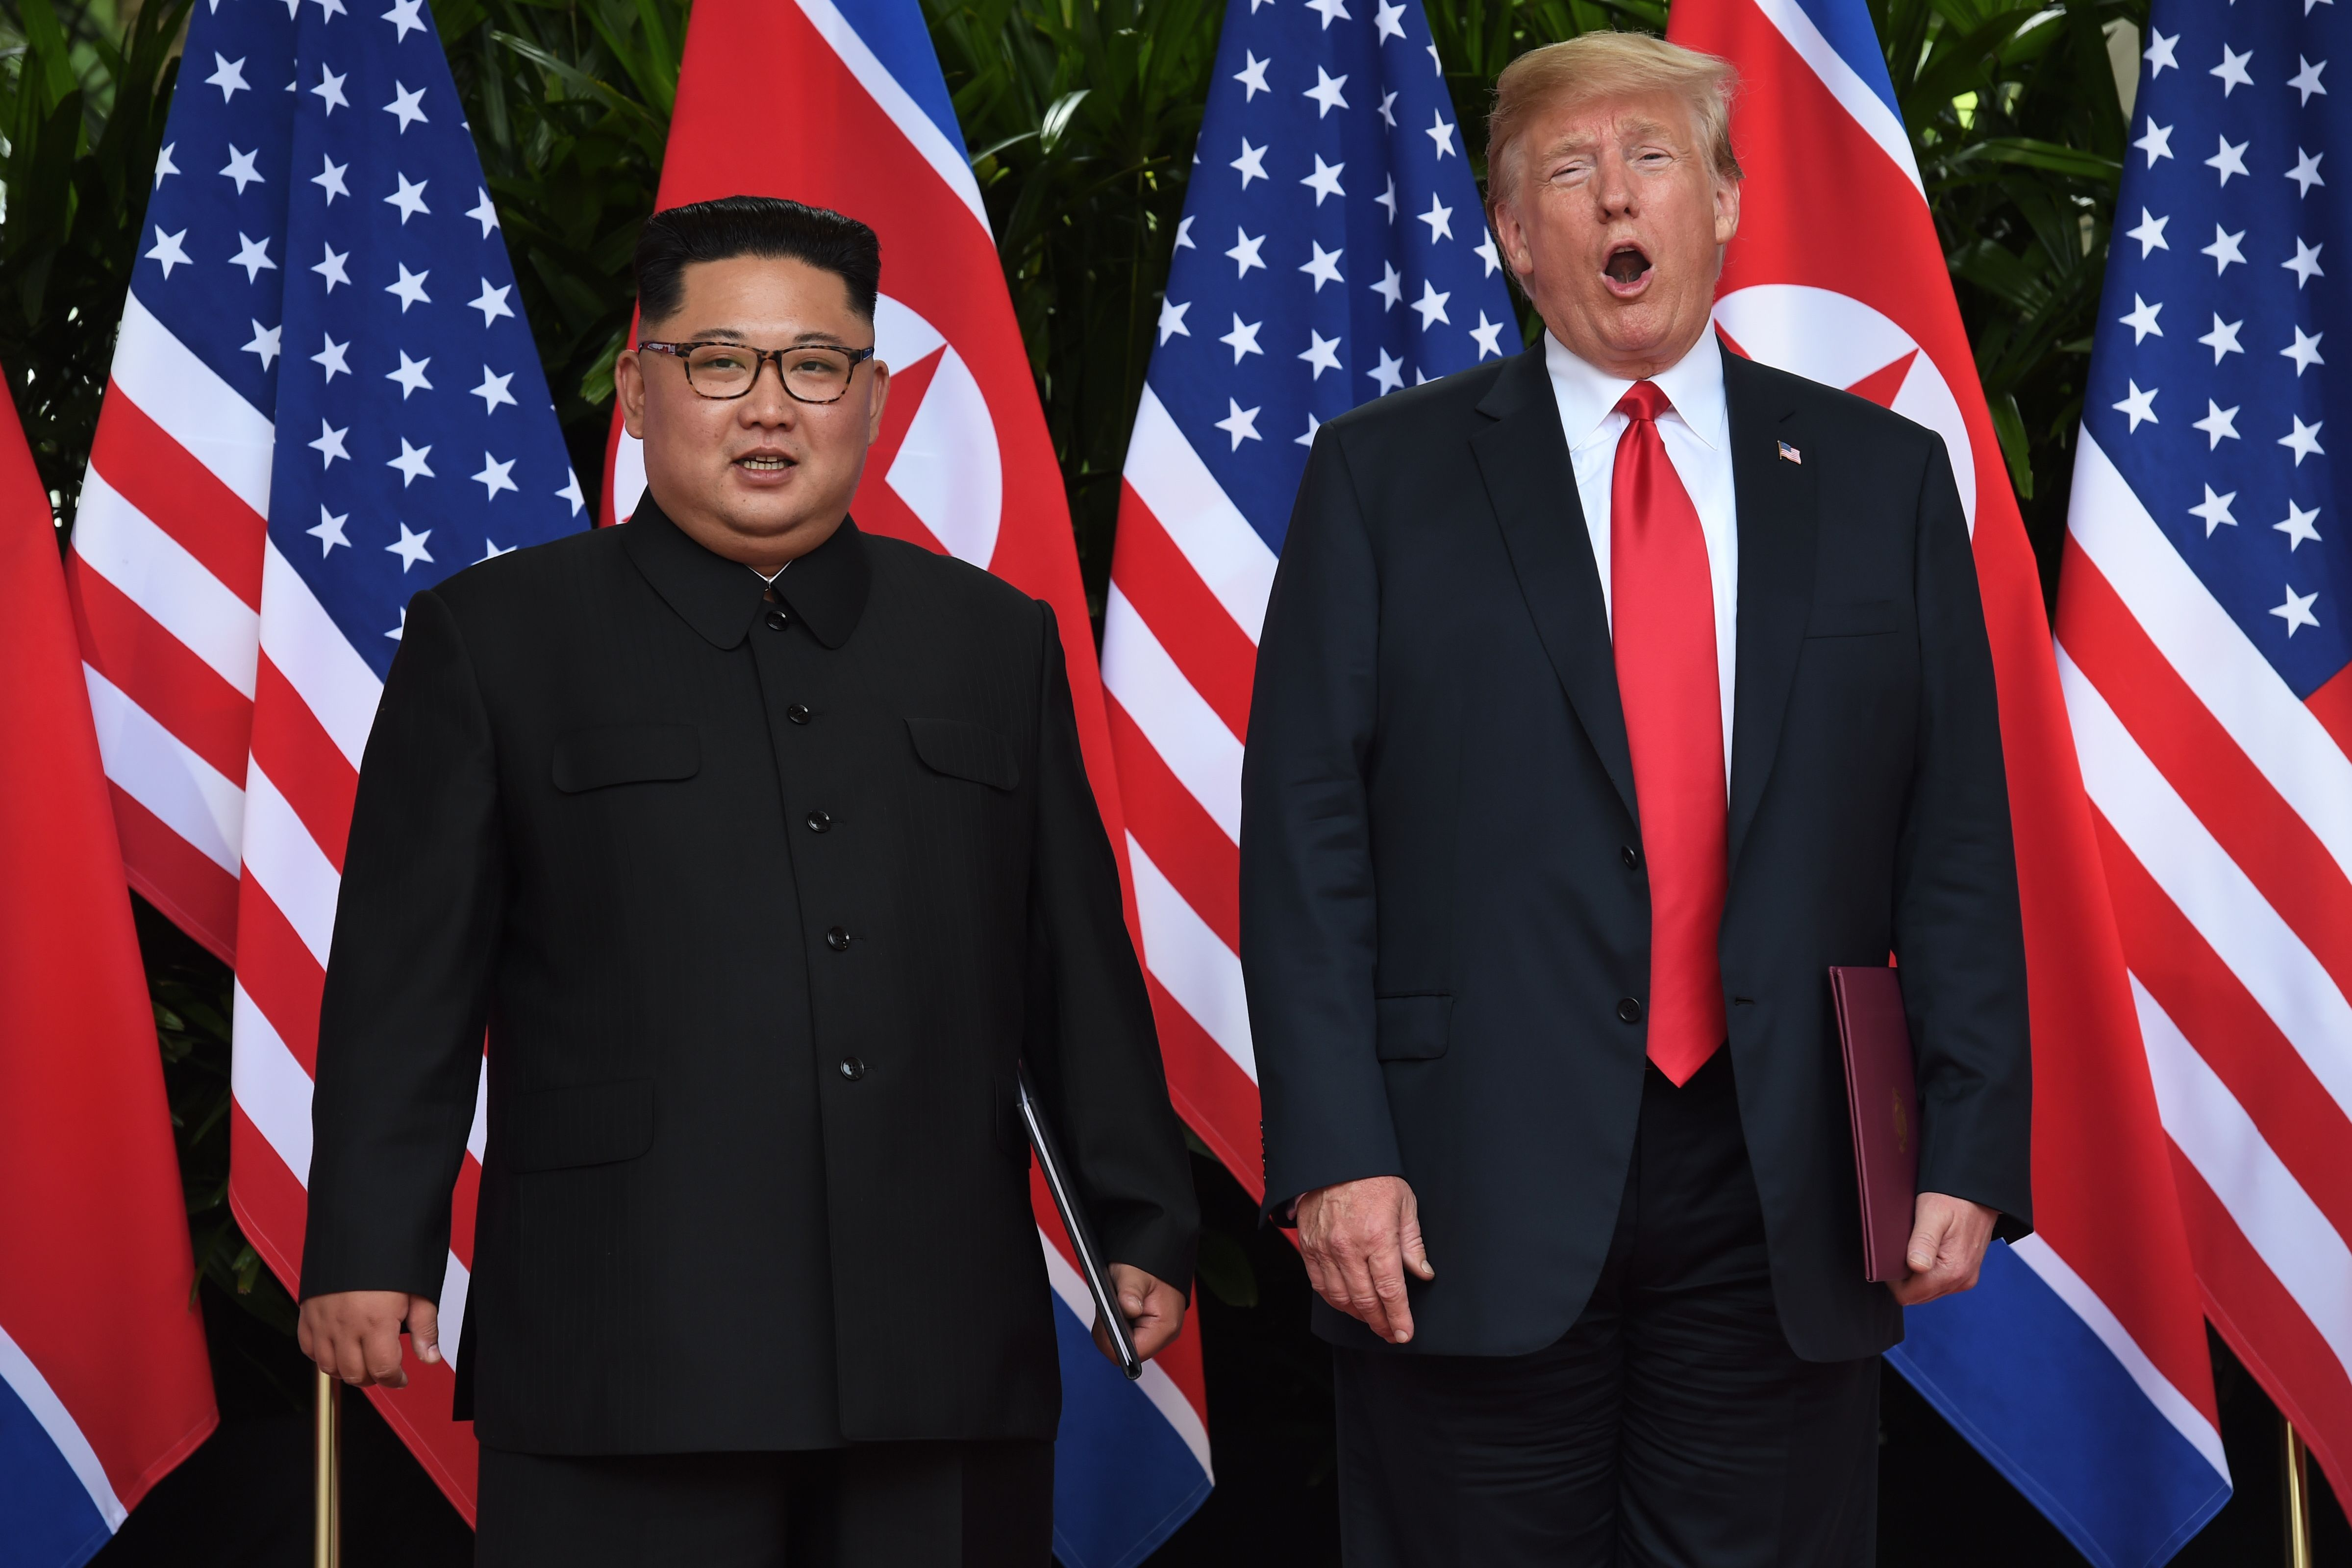 The two leaders stand side by side in front of a row of alternating North Korean and American flags.